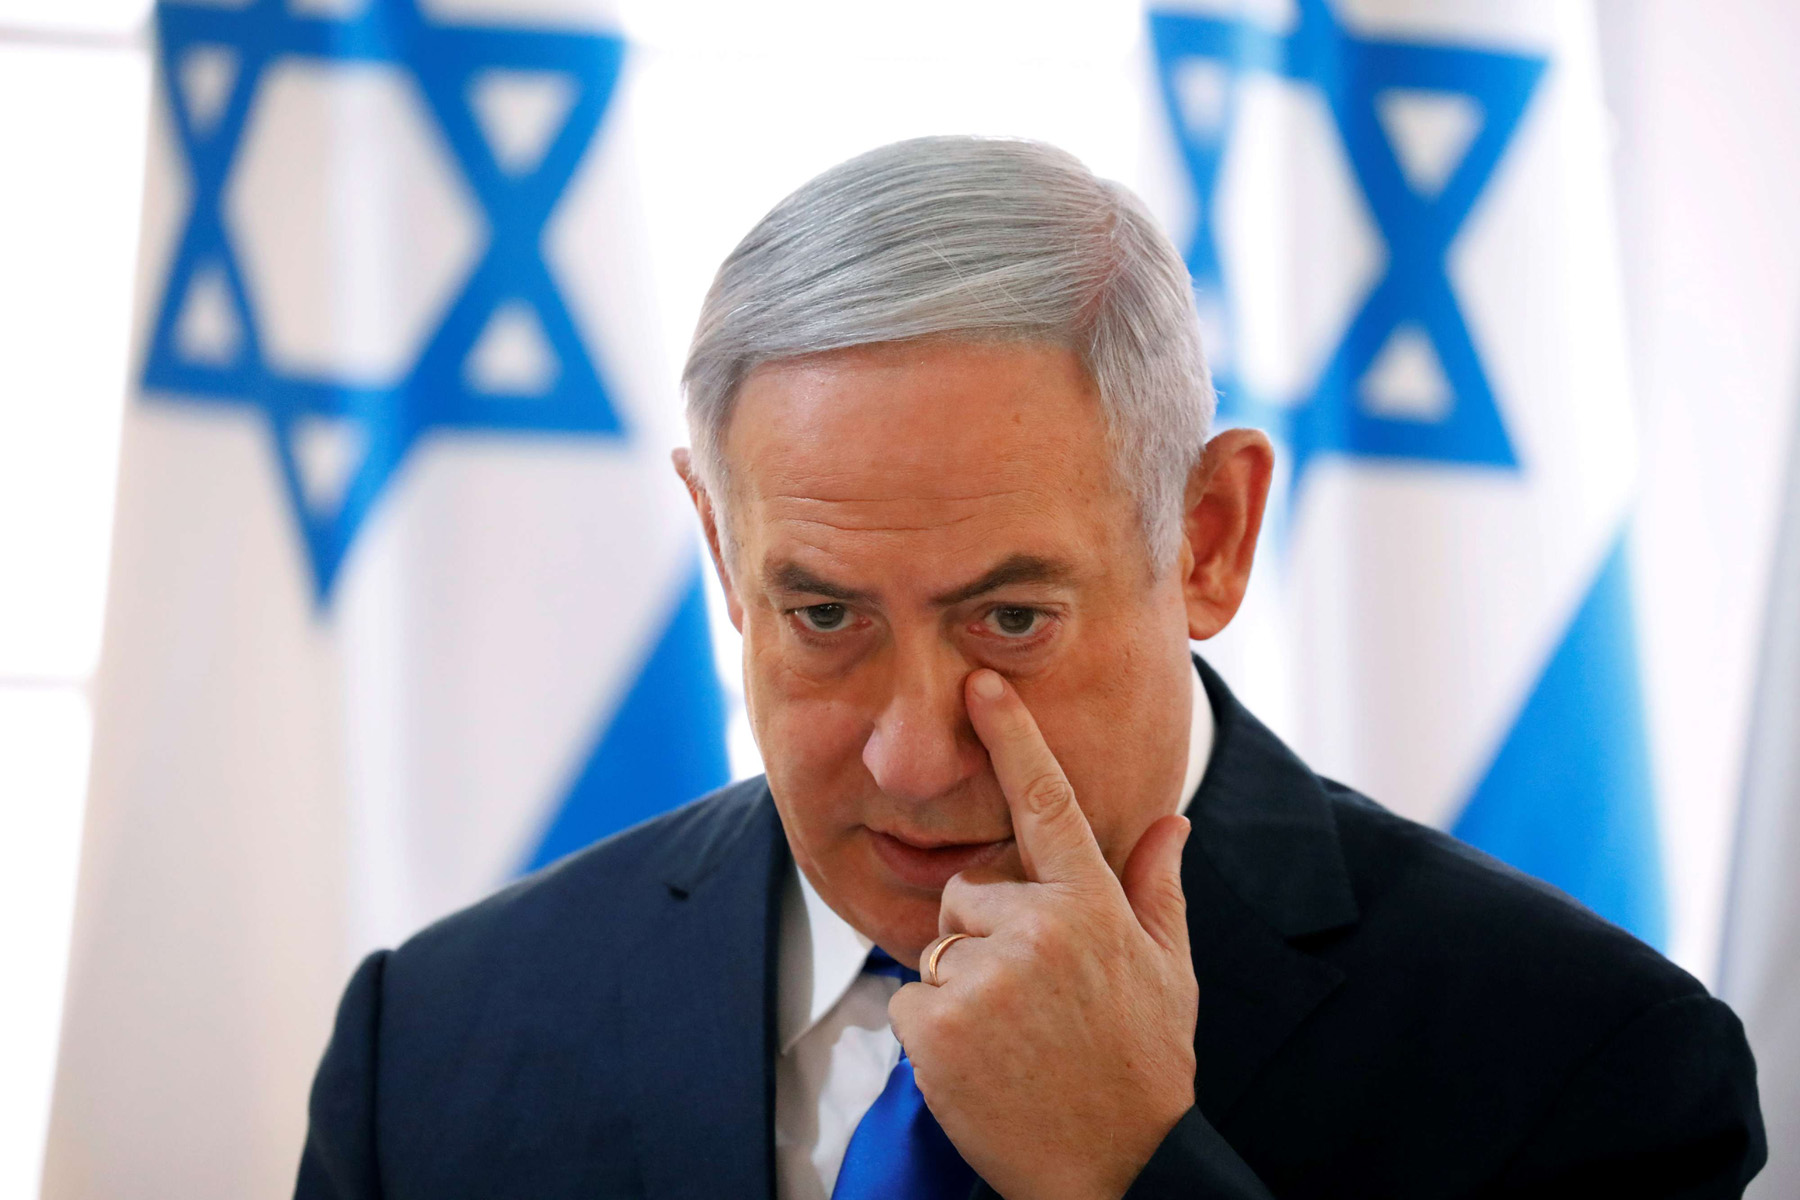 sraeli Prime Minister Binyamin Netanyahu gestures during a weekly cabinet meeting in the Jordan Valley, in the Israeli-occupied West Bank September 15. (Reuters)